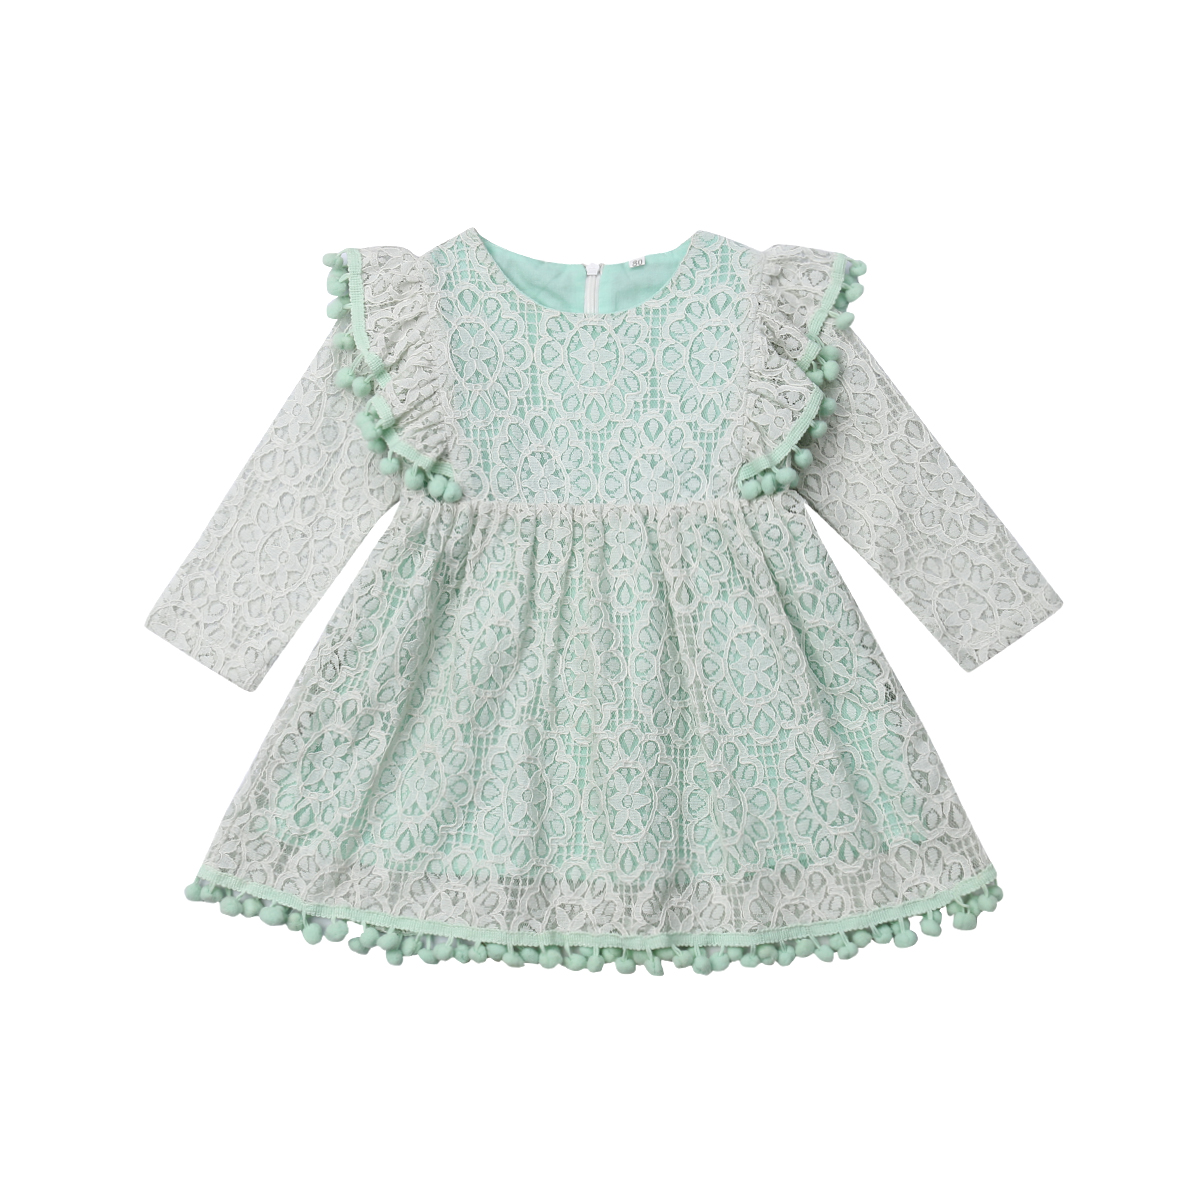 1-6Y Lace Green Kids Dresses For Girls Princess Tutu Party Dresses Toddler Girls Long Sleeve Dress FD4 2018 summer dresses kids party for girl dress children girls clothes 2 6y long sleeve crochet lace tutu princess vetement fille